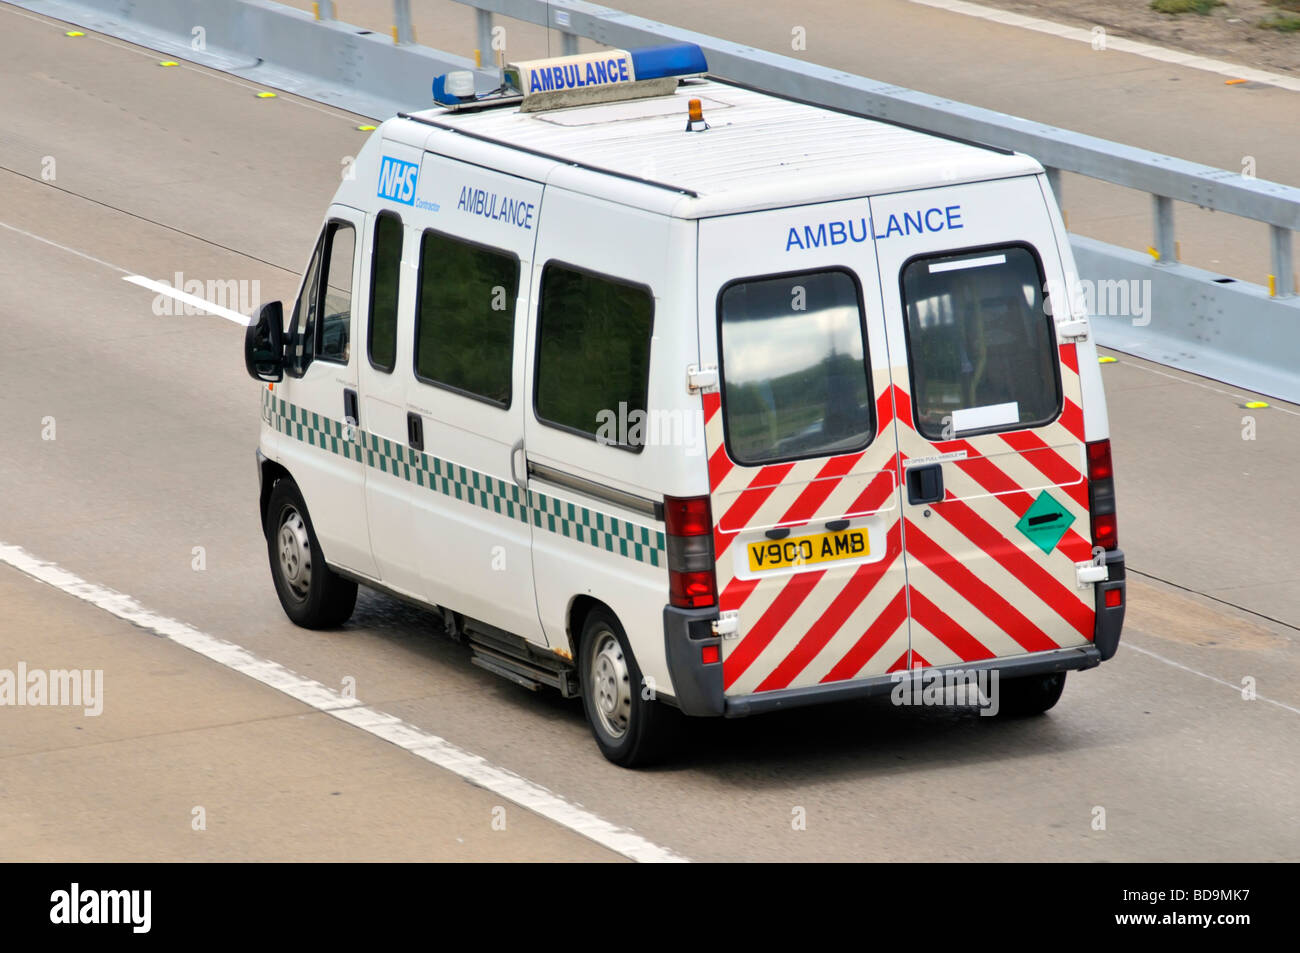 NHS contractor Ambulance service vehicle at speed  on M25 motorway - Stock Image